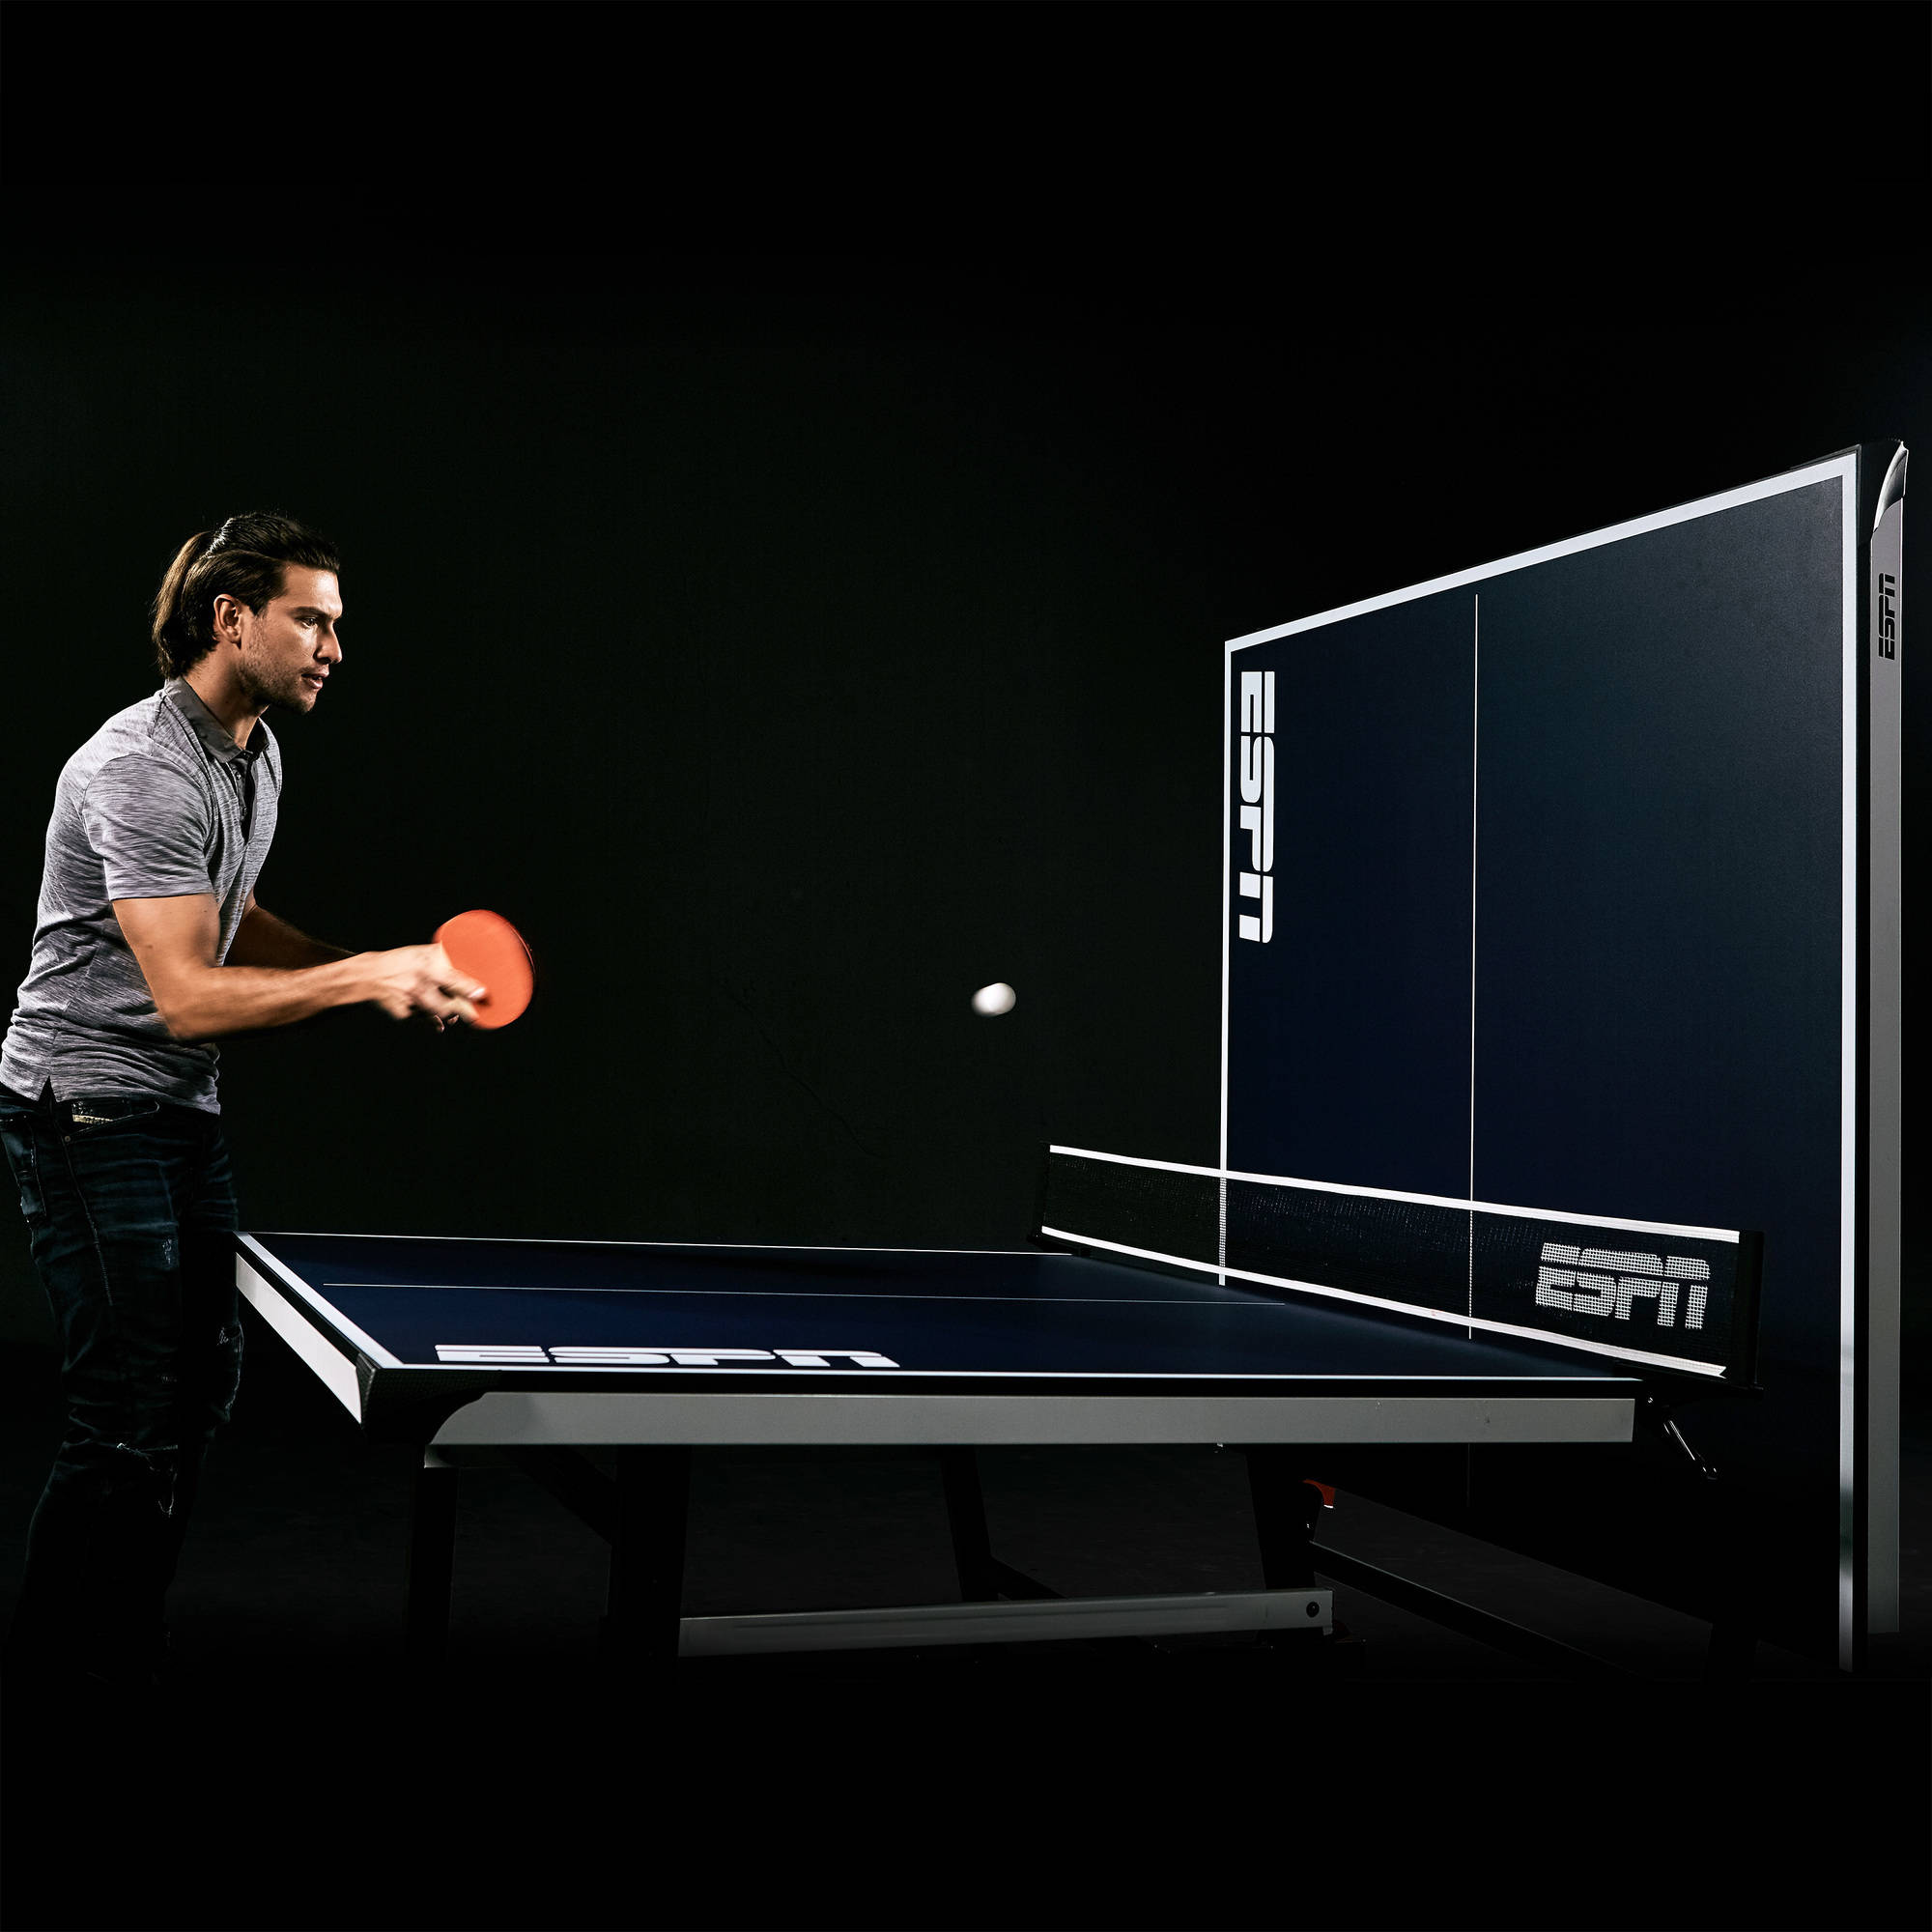 Table tennis table espn ping pong official size foldable for Table tennis 6 0